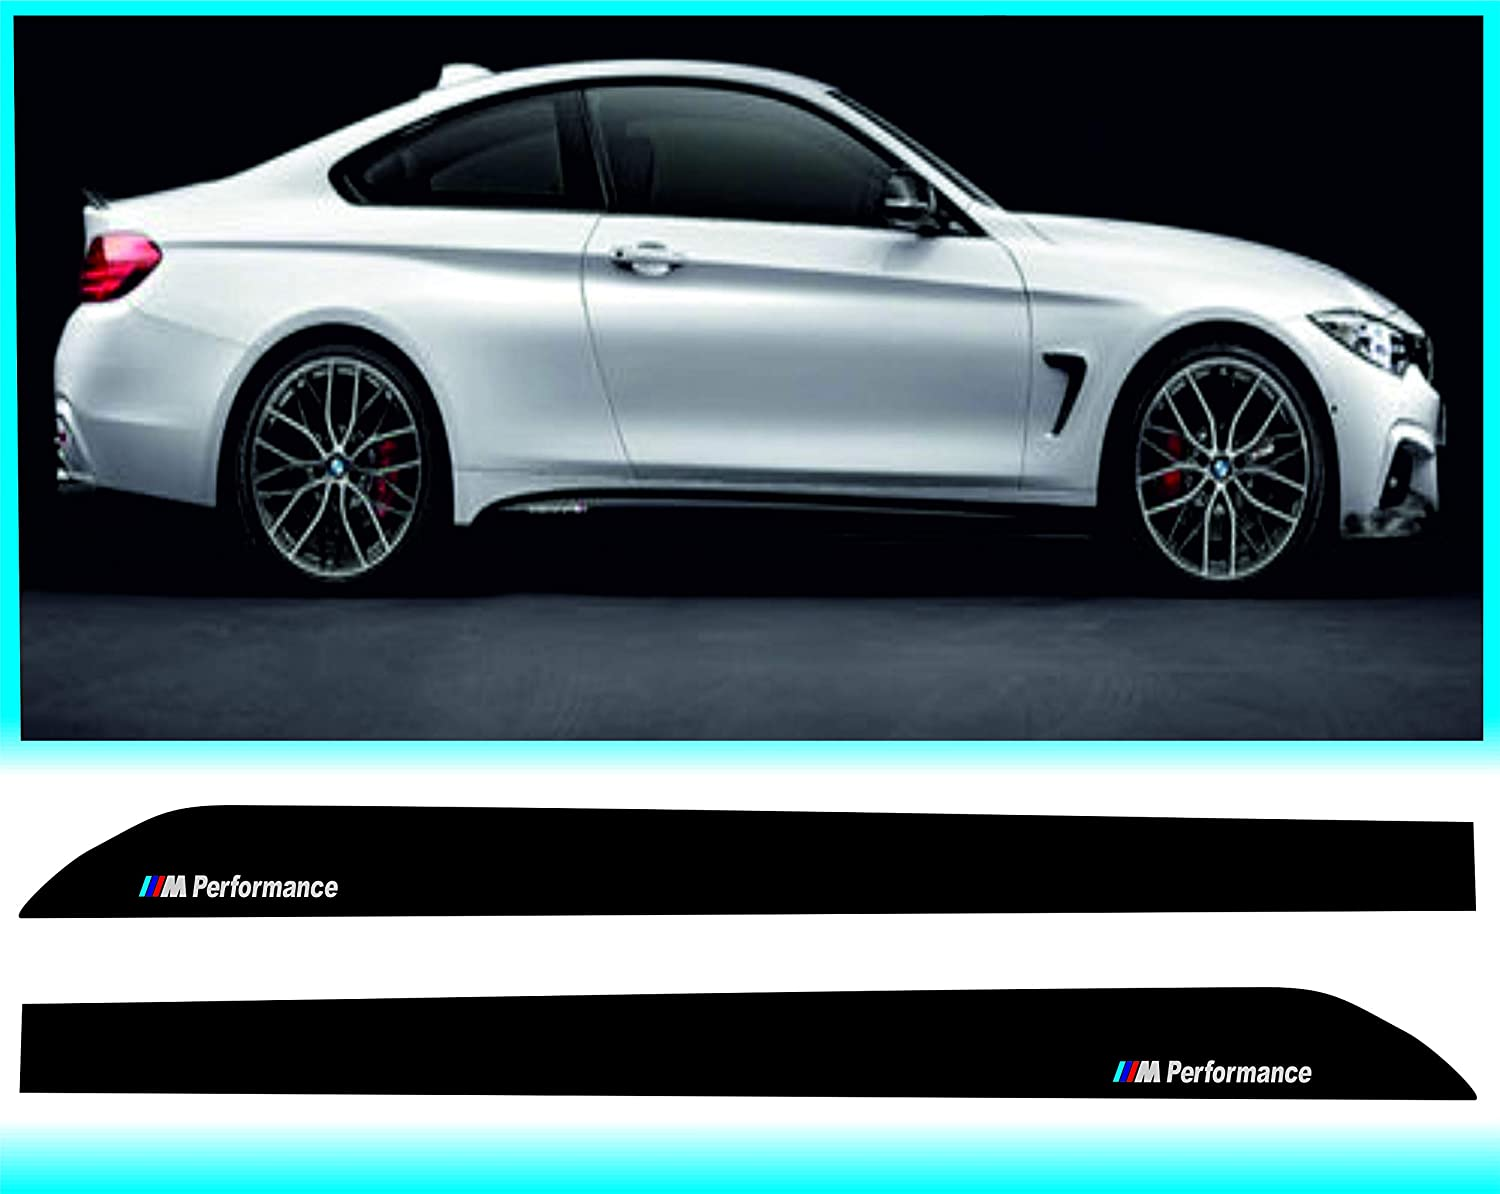 2PCS for BMW Car Decals Window Decal Performance Sports Decal Motorsport Sticker